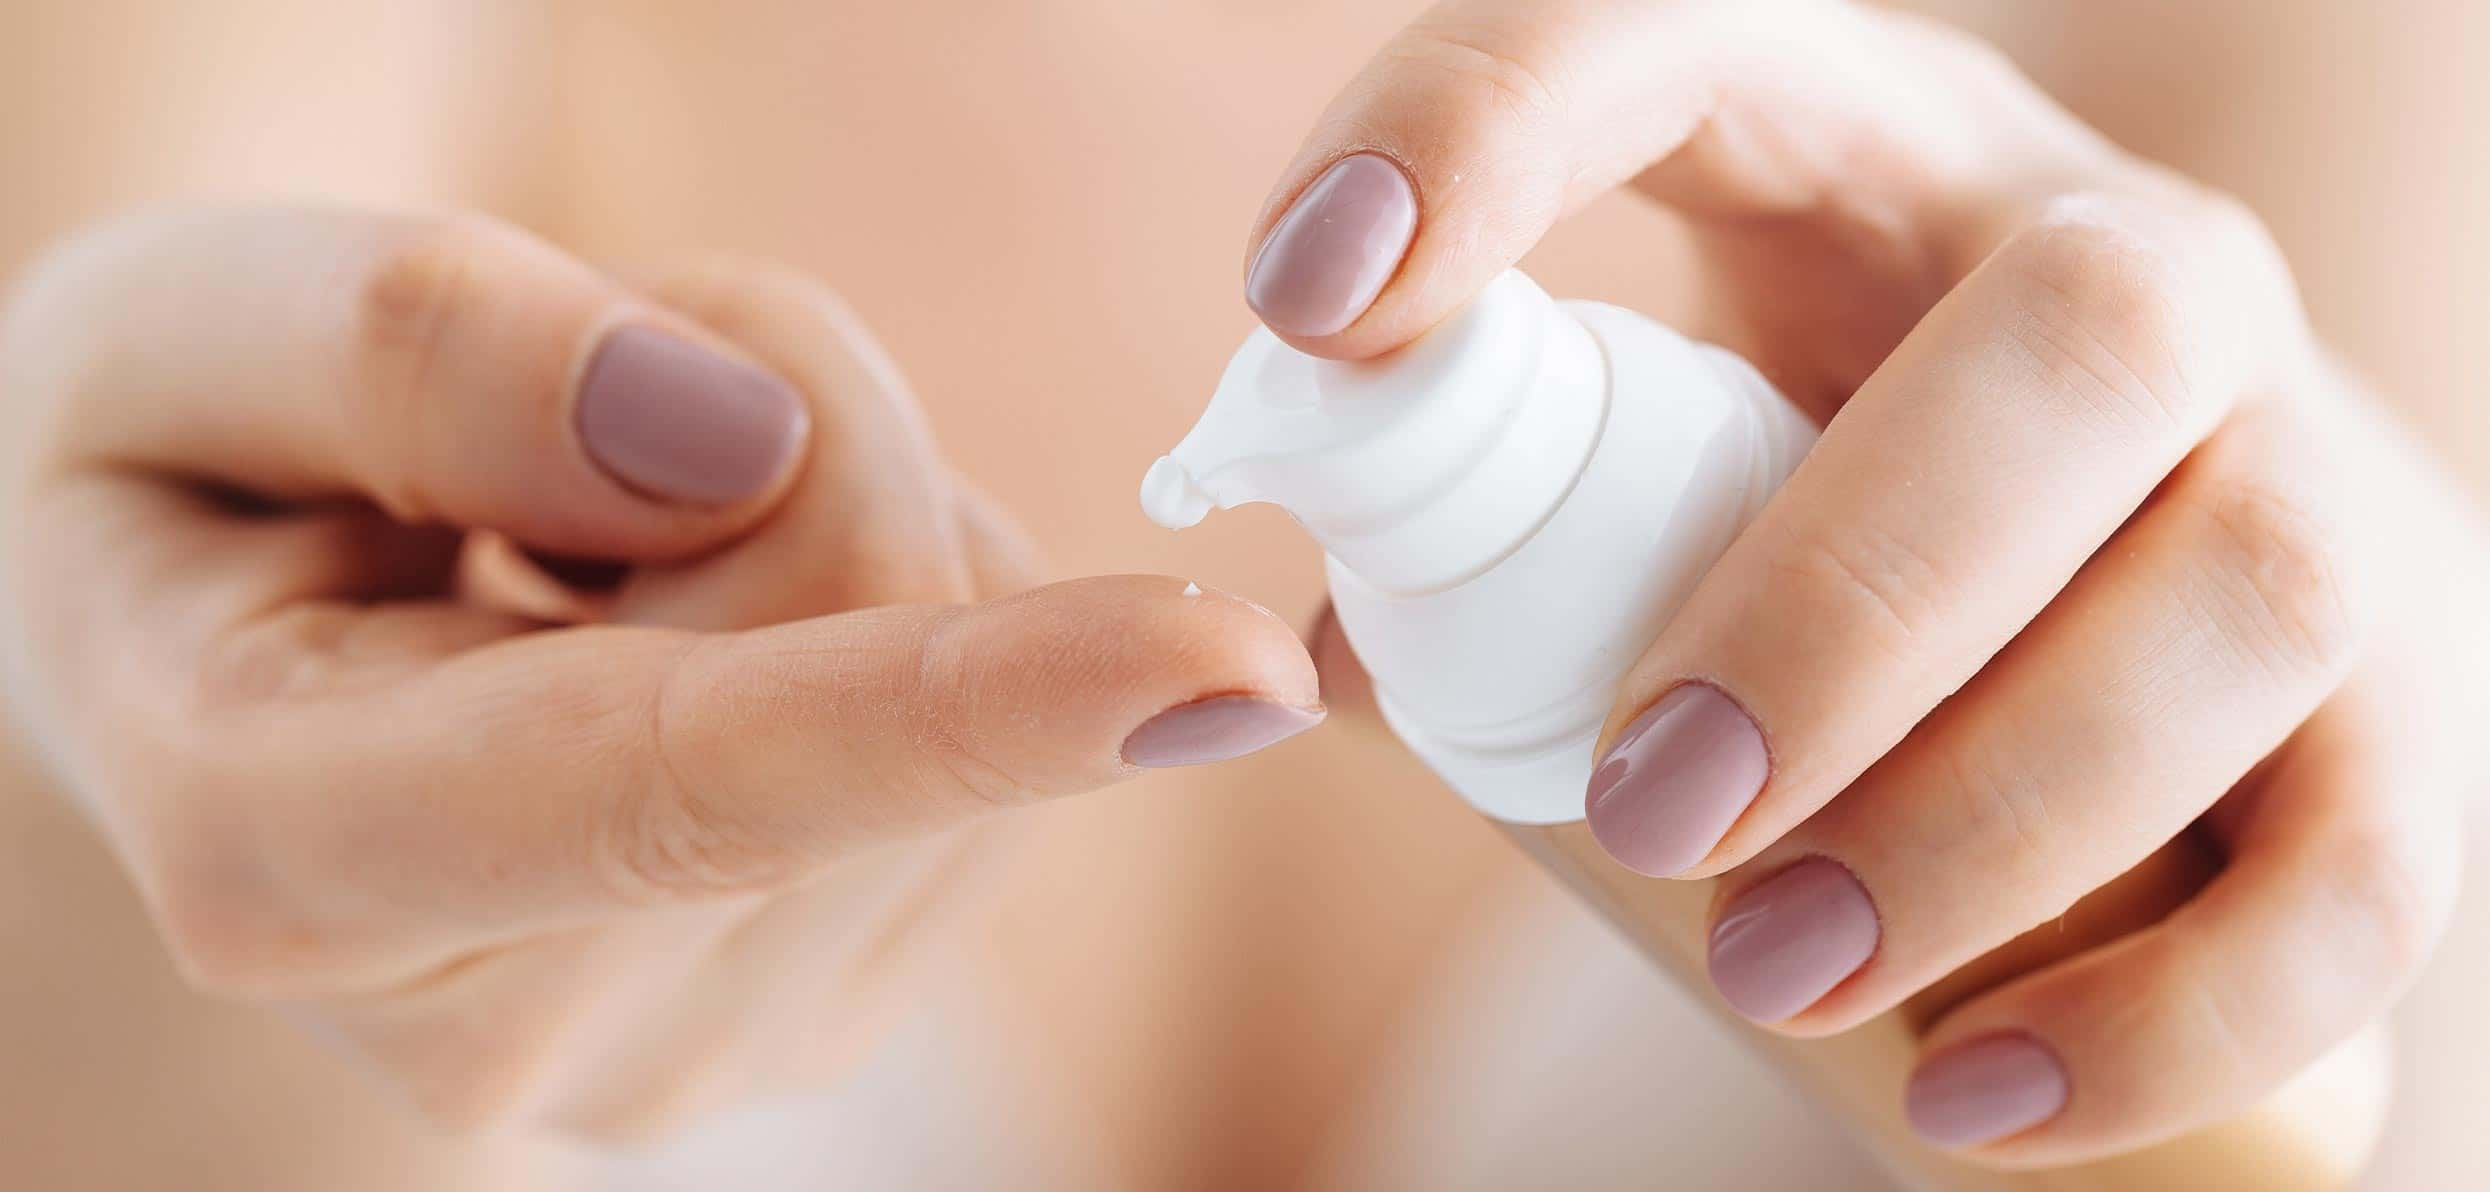 Woman's hand taking a drop of hand cream - bioidentical hormones